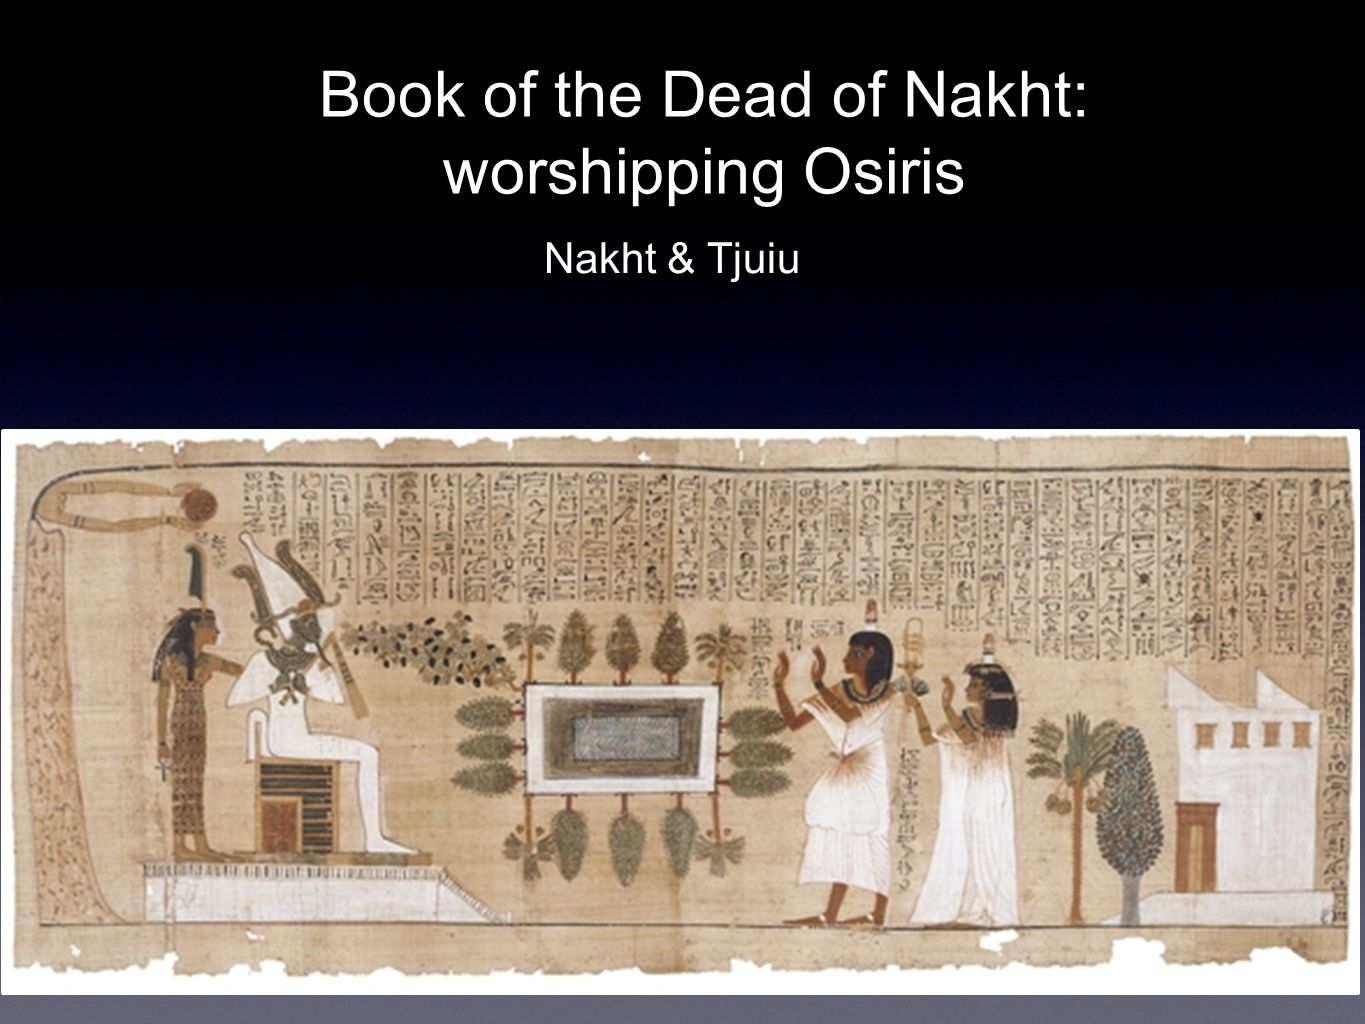 Book of the Dead of Nakht: worshipping Osiris Nakht & Tjuiu